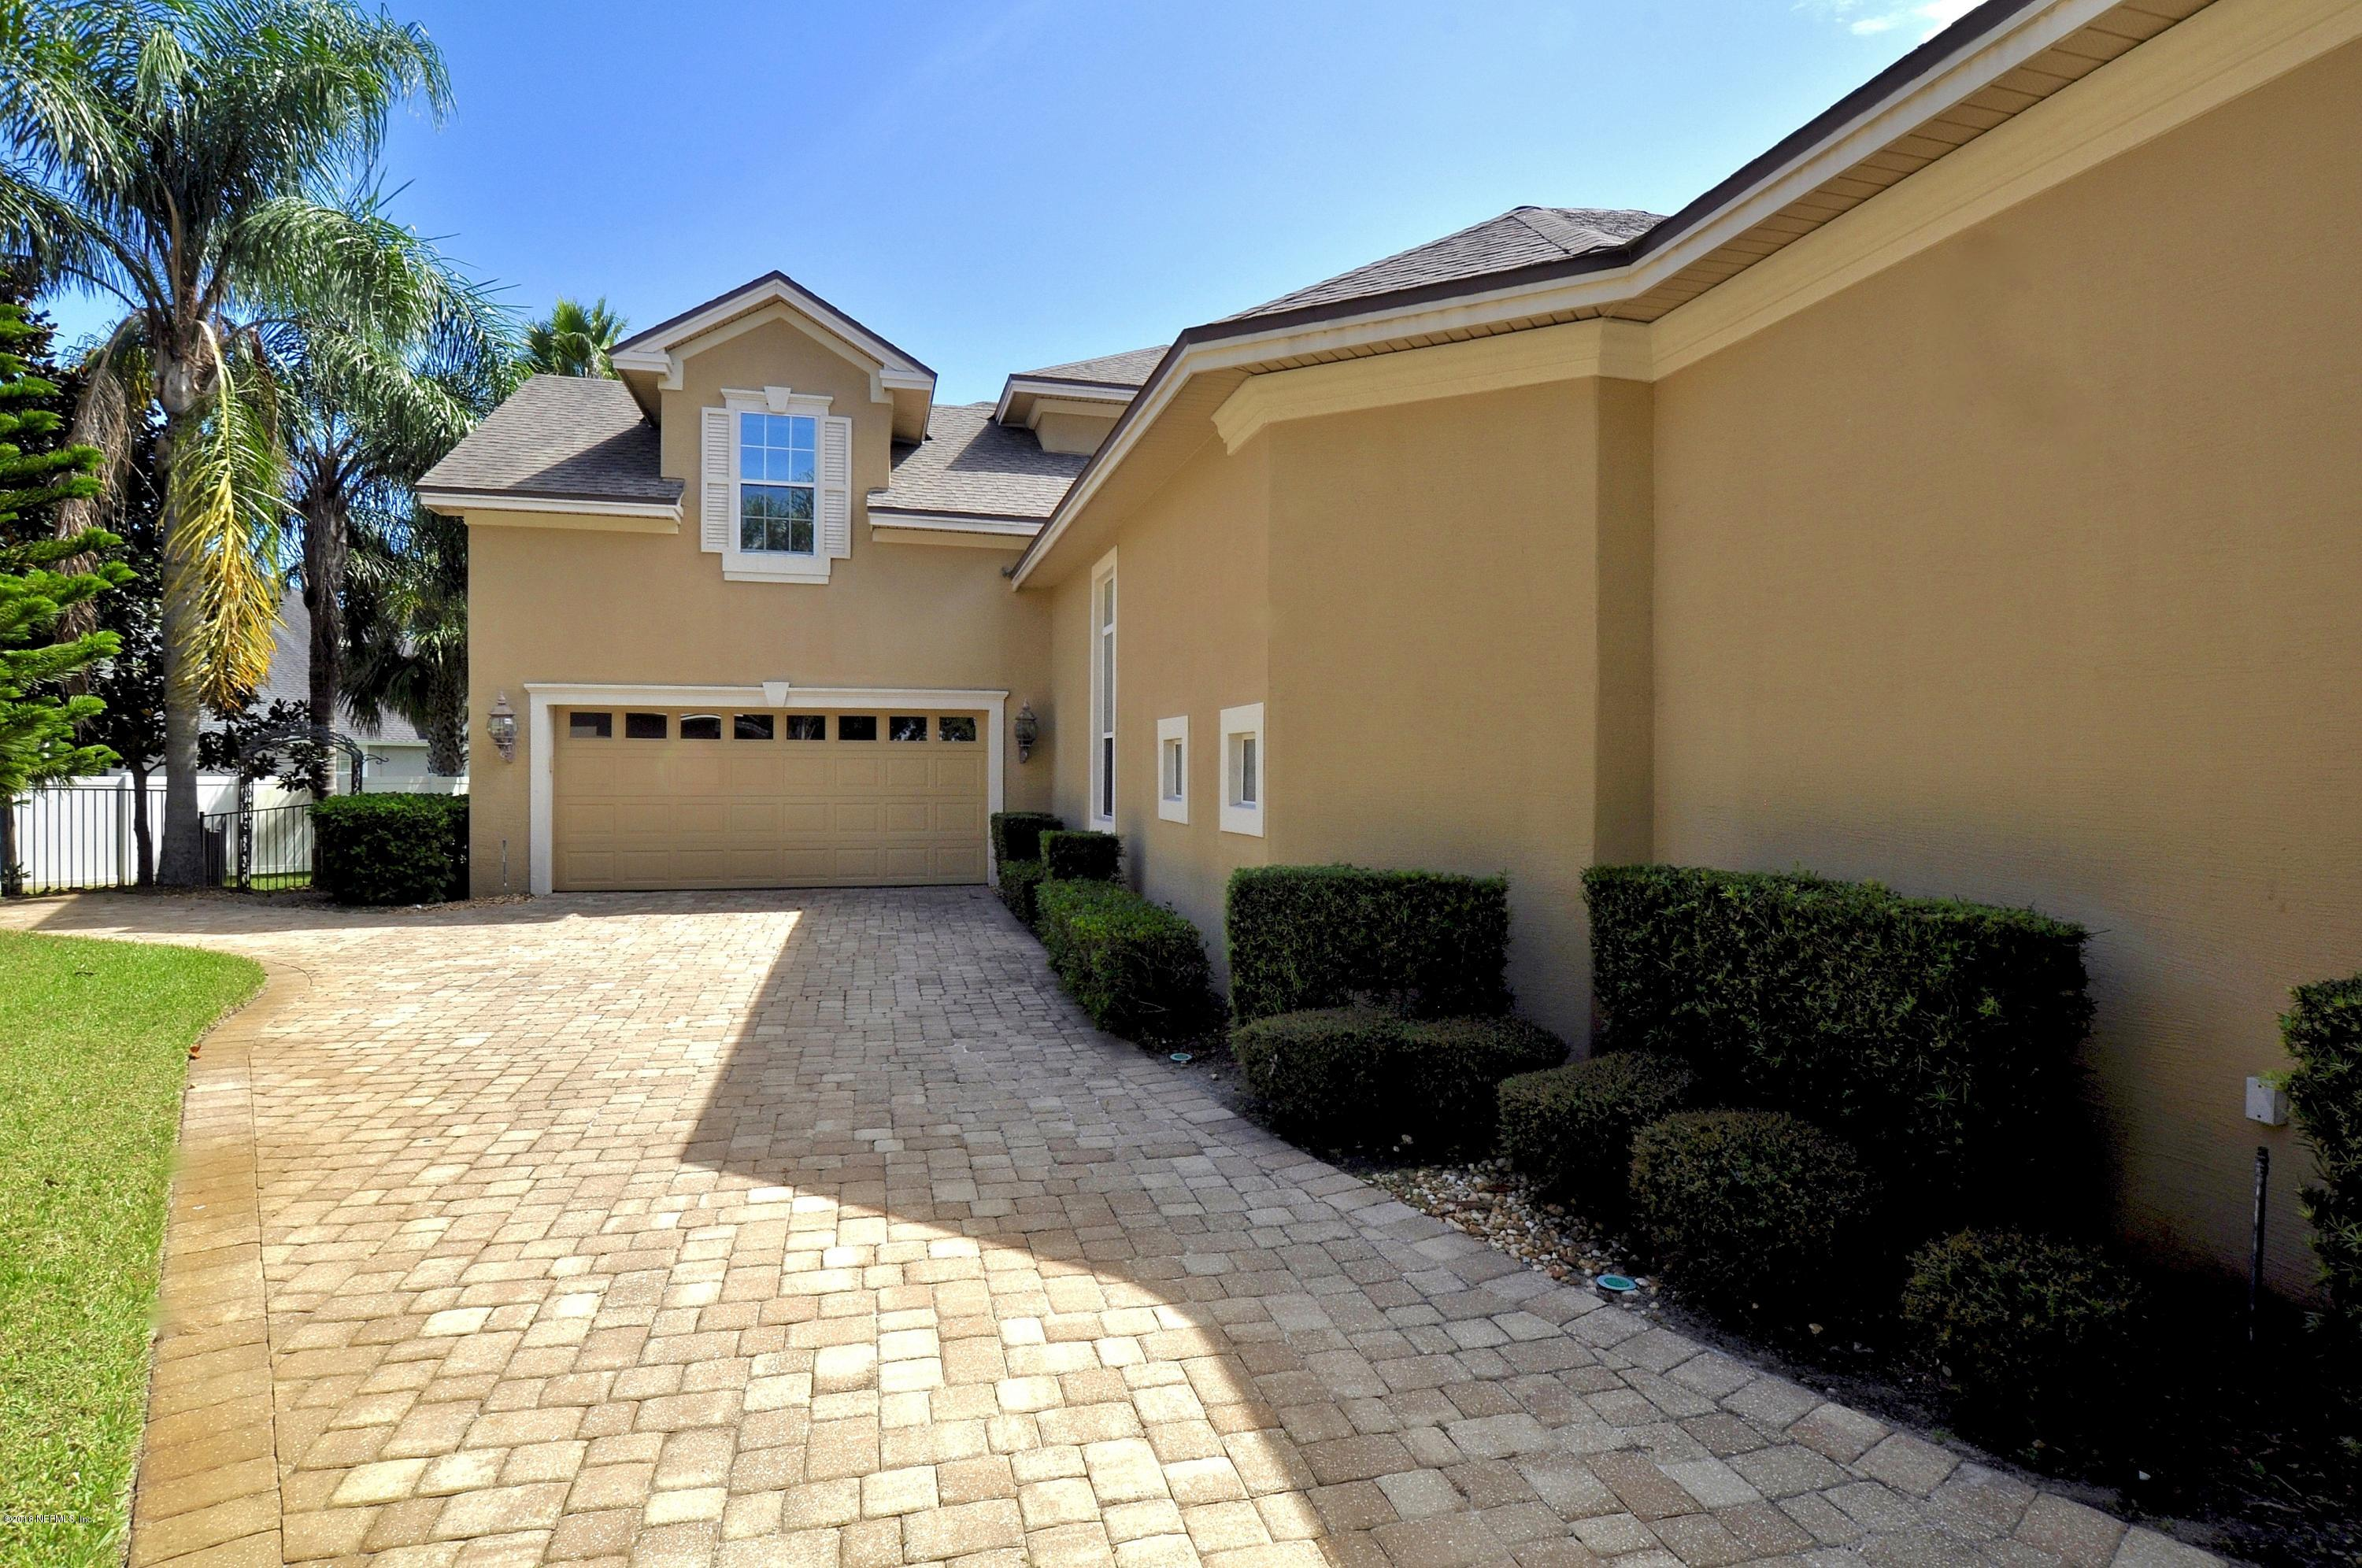 148 PONTE VEDRA EAST, PONTE VEDRA BEACH, FLORIDA 32082, 4 Bedrooms Bedrooms, ,3 BathroomsBathrooms,Residential - single family,For sale,PONTE VEDRA EAST,959255